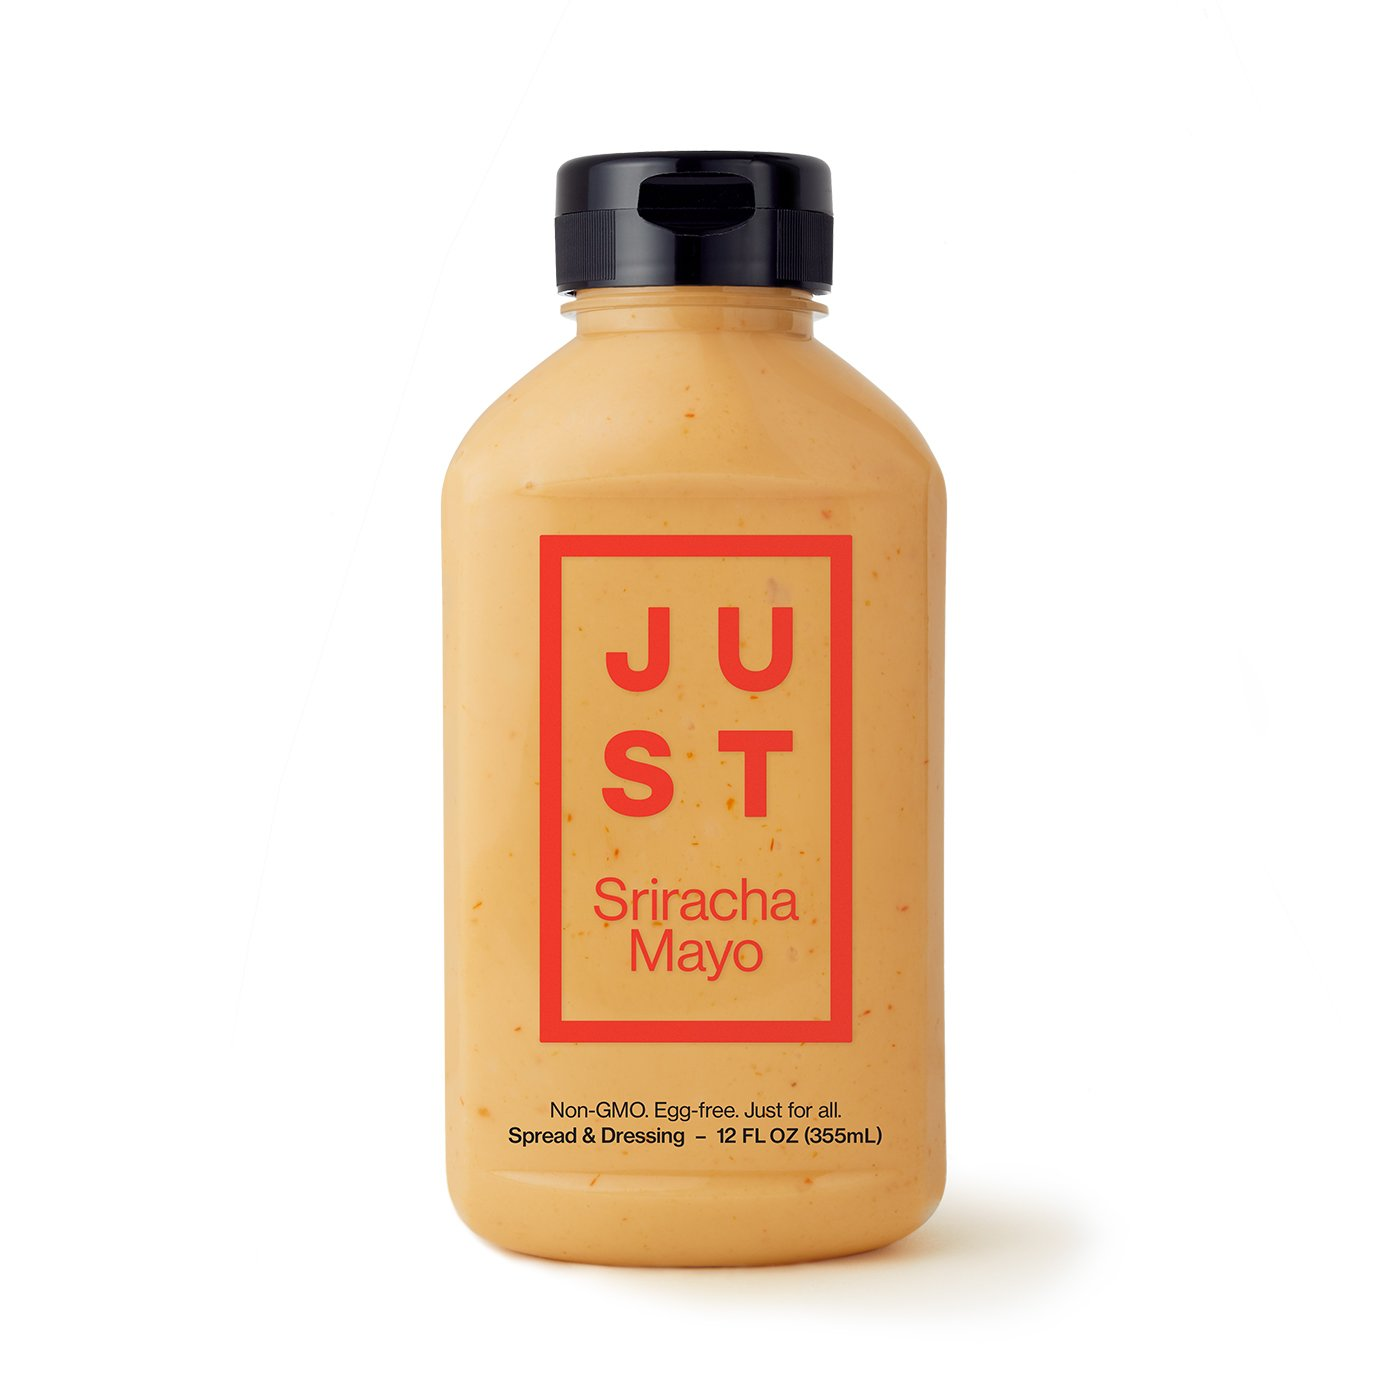 Just Sriracha Mayo, Non-GMO, 12oz